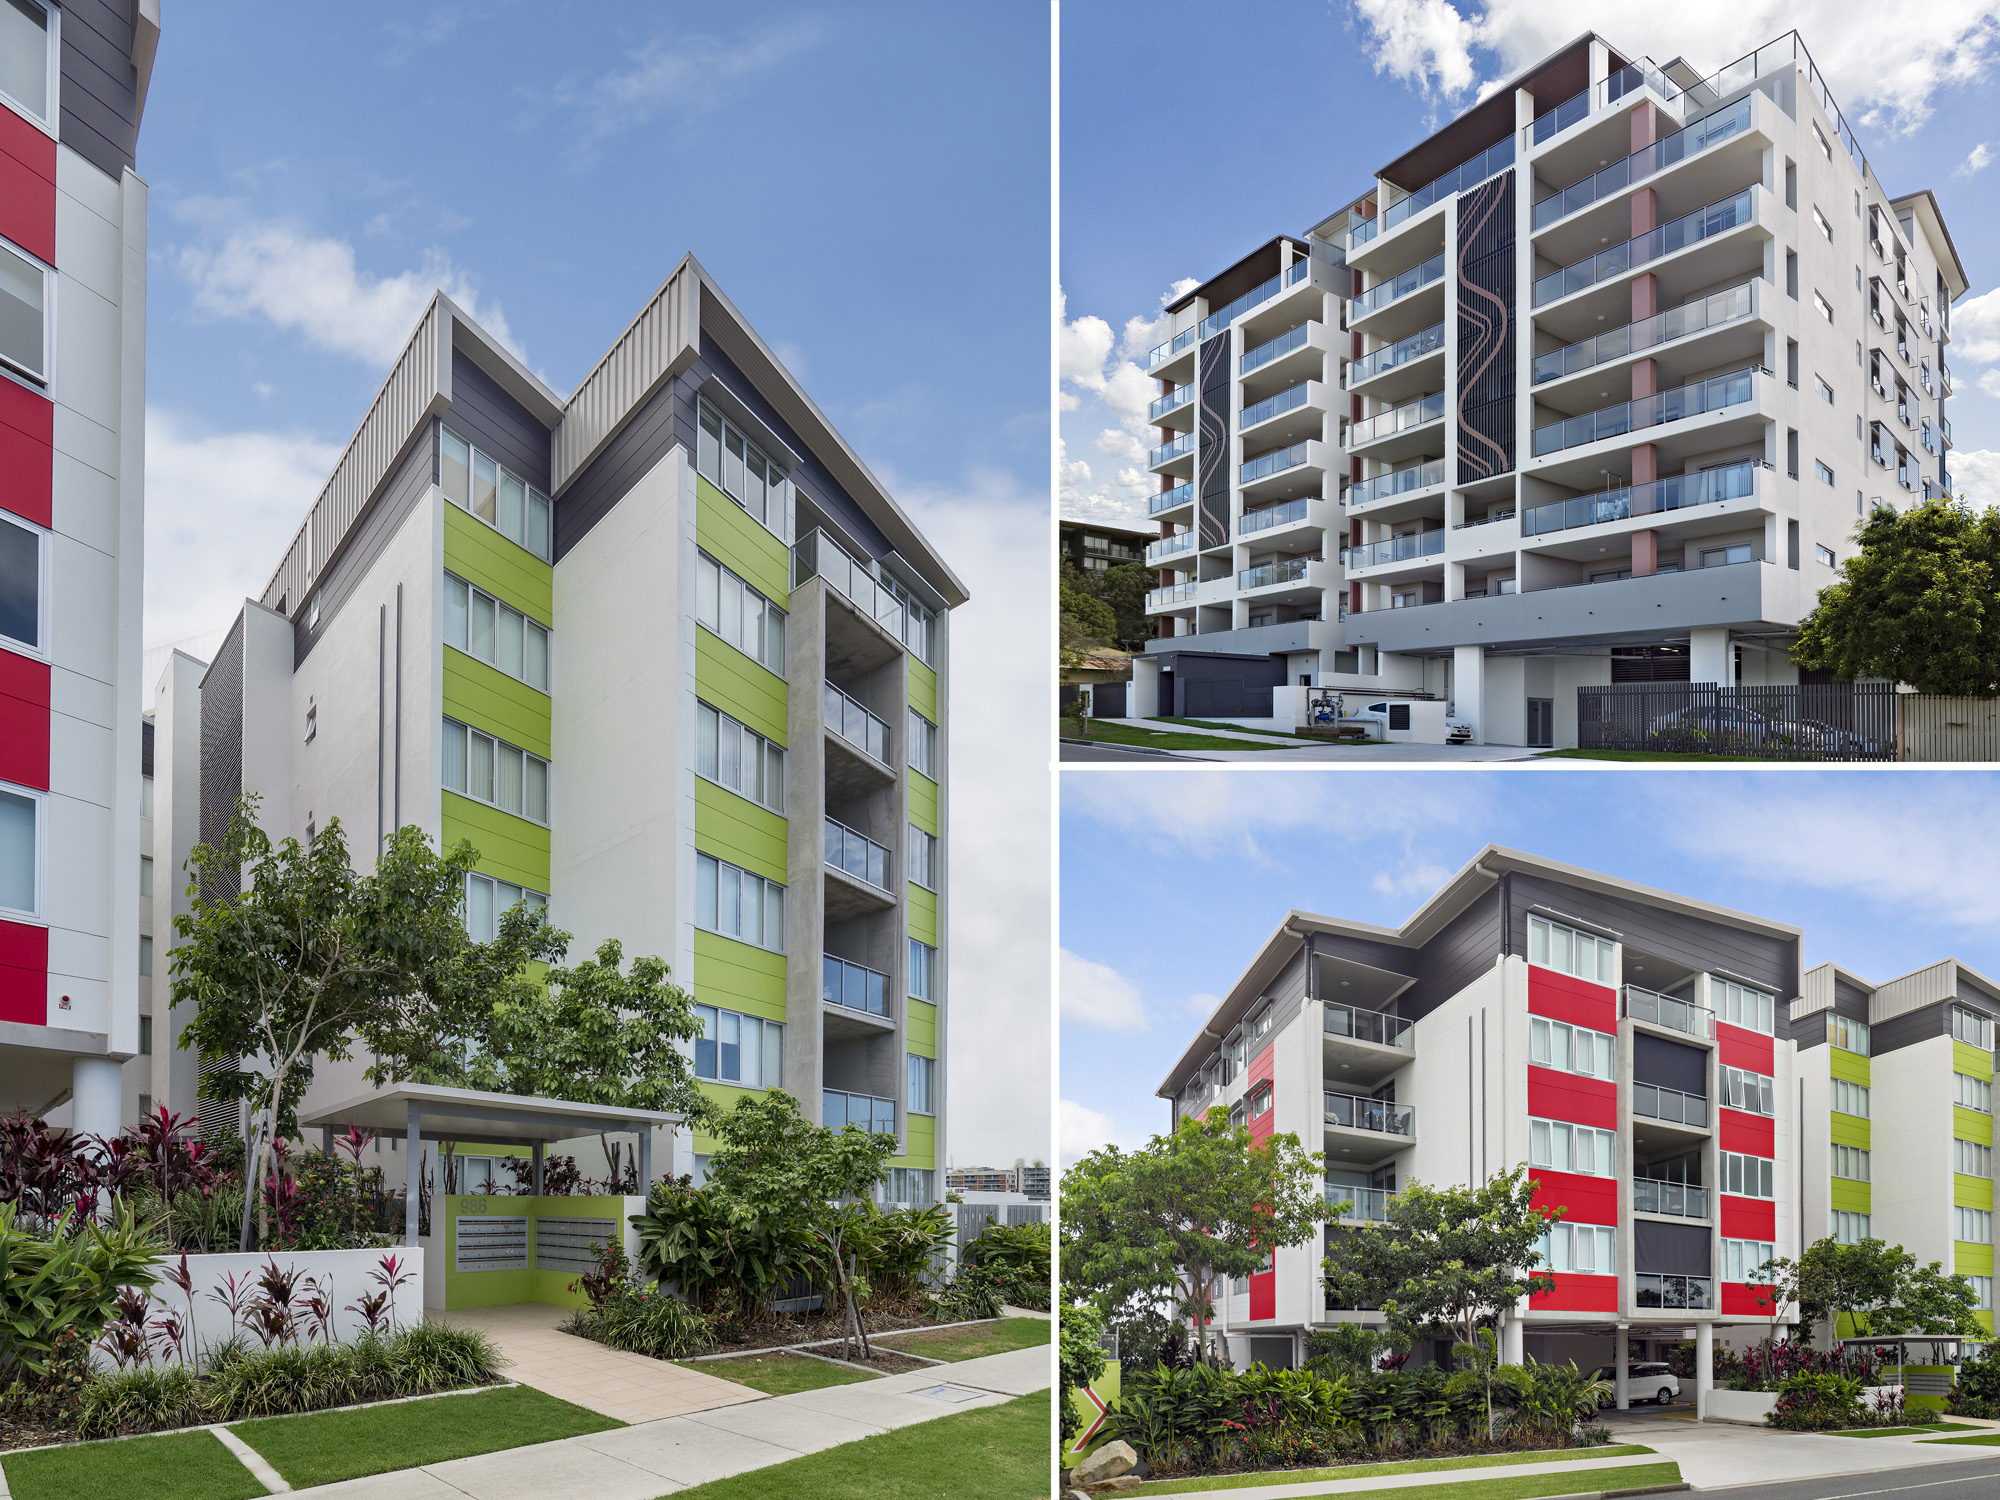 Brisbane apartment exterior real estate photography by Phil Savory